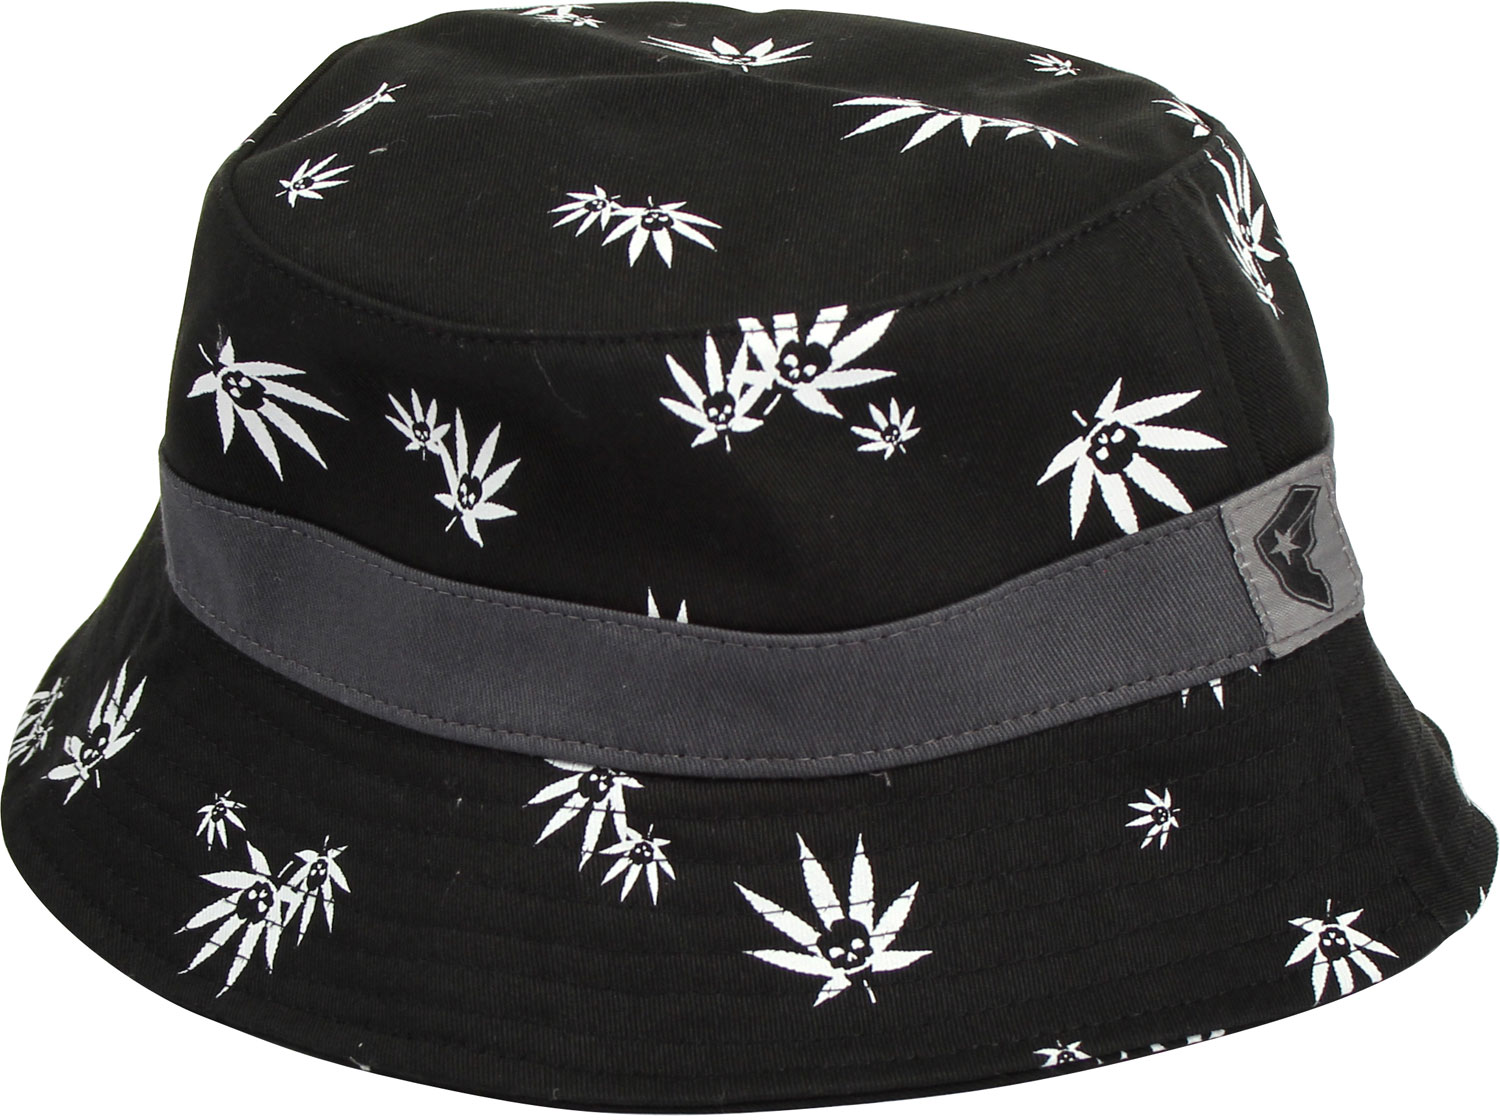 """b092d346ce Even Famous hopped onto the Bucket Hat trend. Above we have the """"Homegrown""""  and """"Paisley bucket hats. Both with """"all over print"""" patterns with skulls  into ..."""